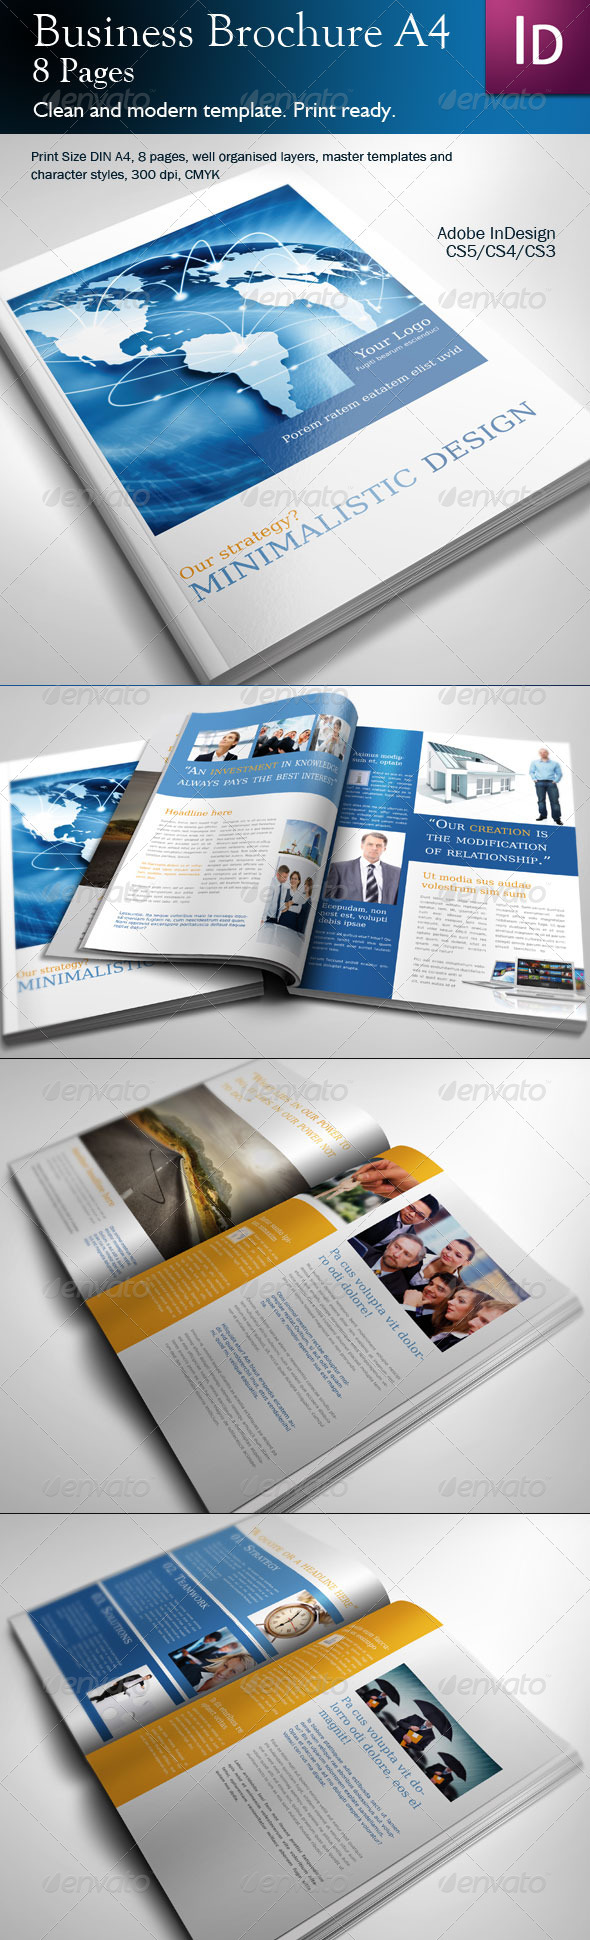 Business Brochure A4 - Corporate Brochures